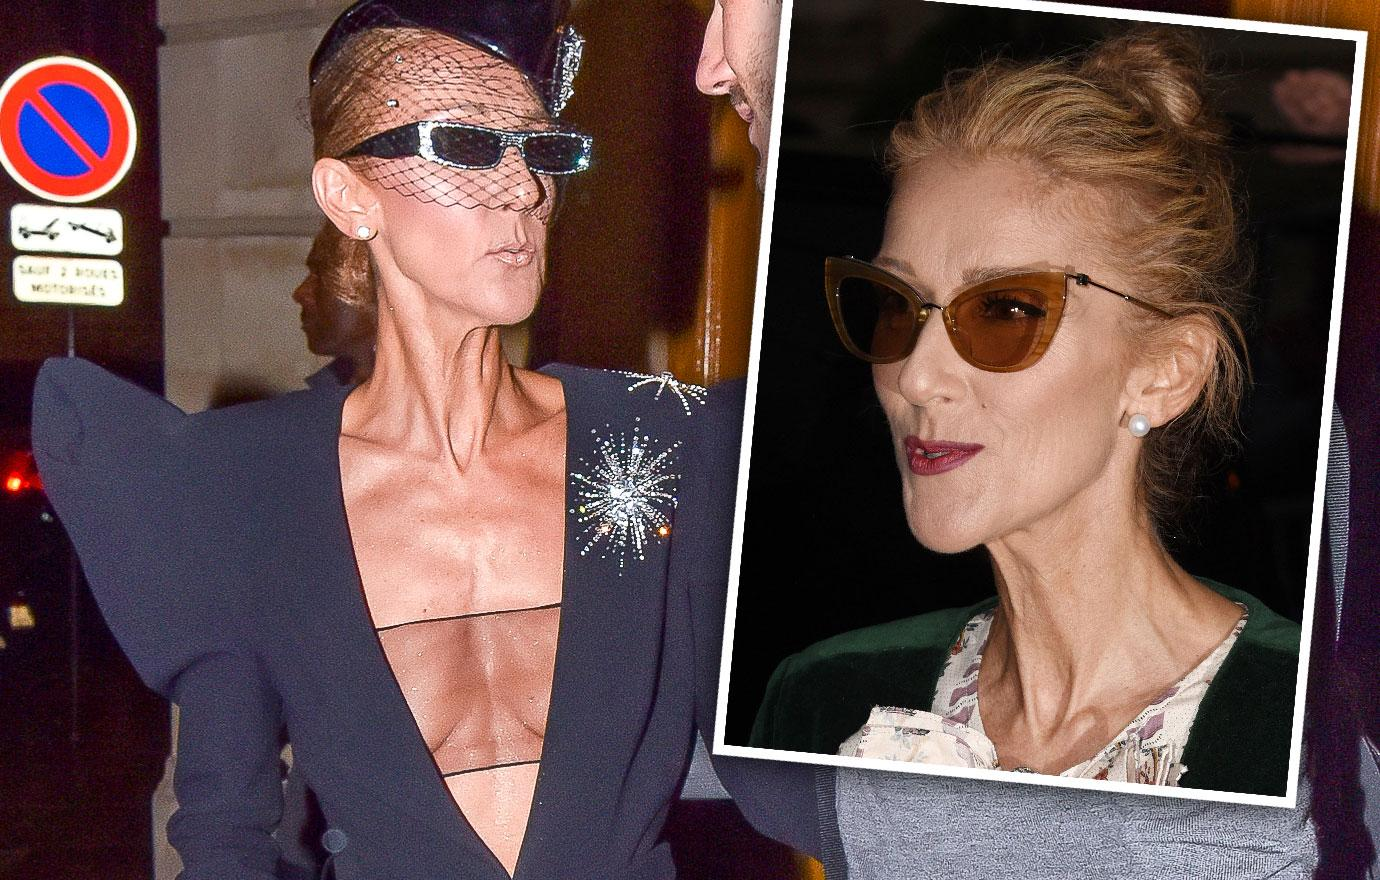 //celine dion scary skinny paris photos revealed pp